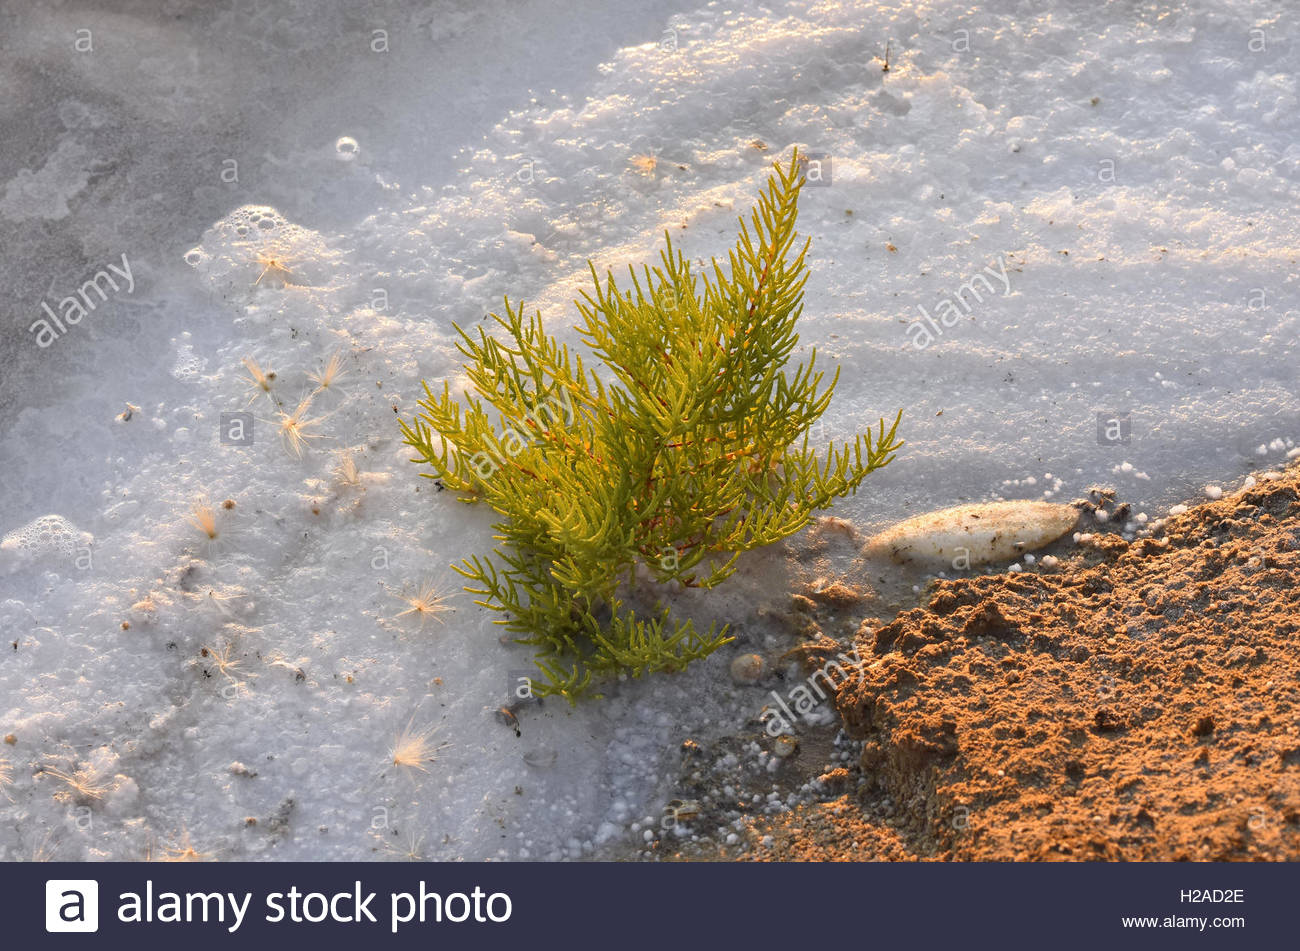 Small conifer tree growing in salt marsh Ria Formosa Nature Reserve Faro Portugal Europe Stock Photo